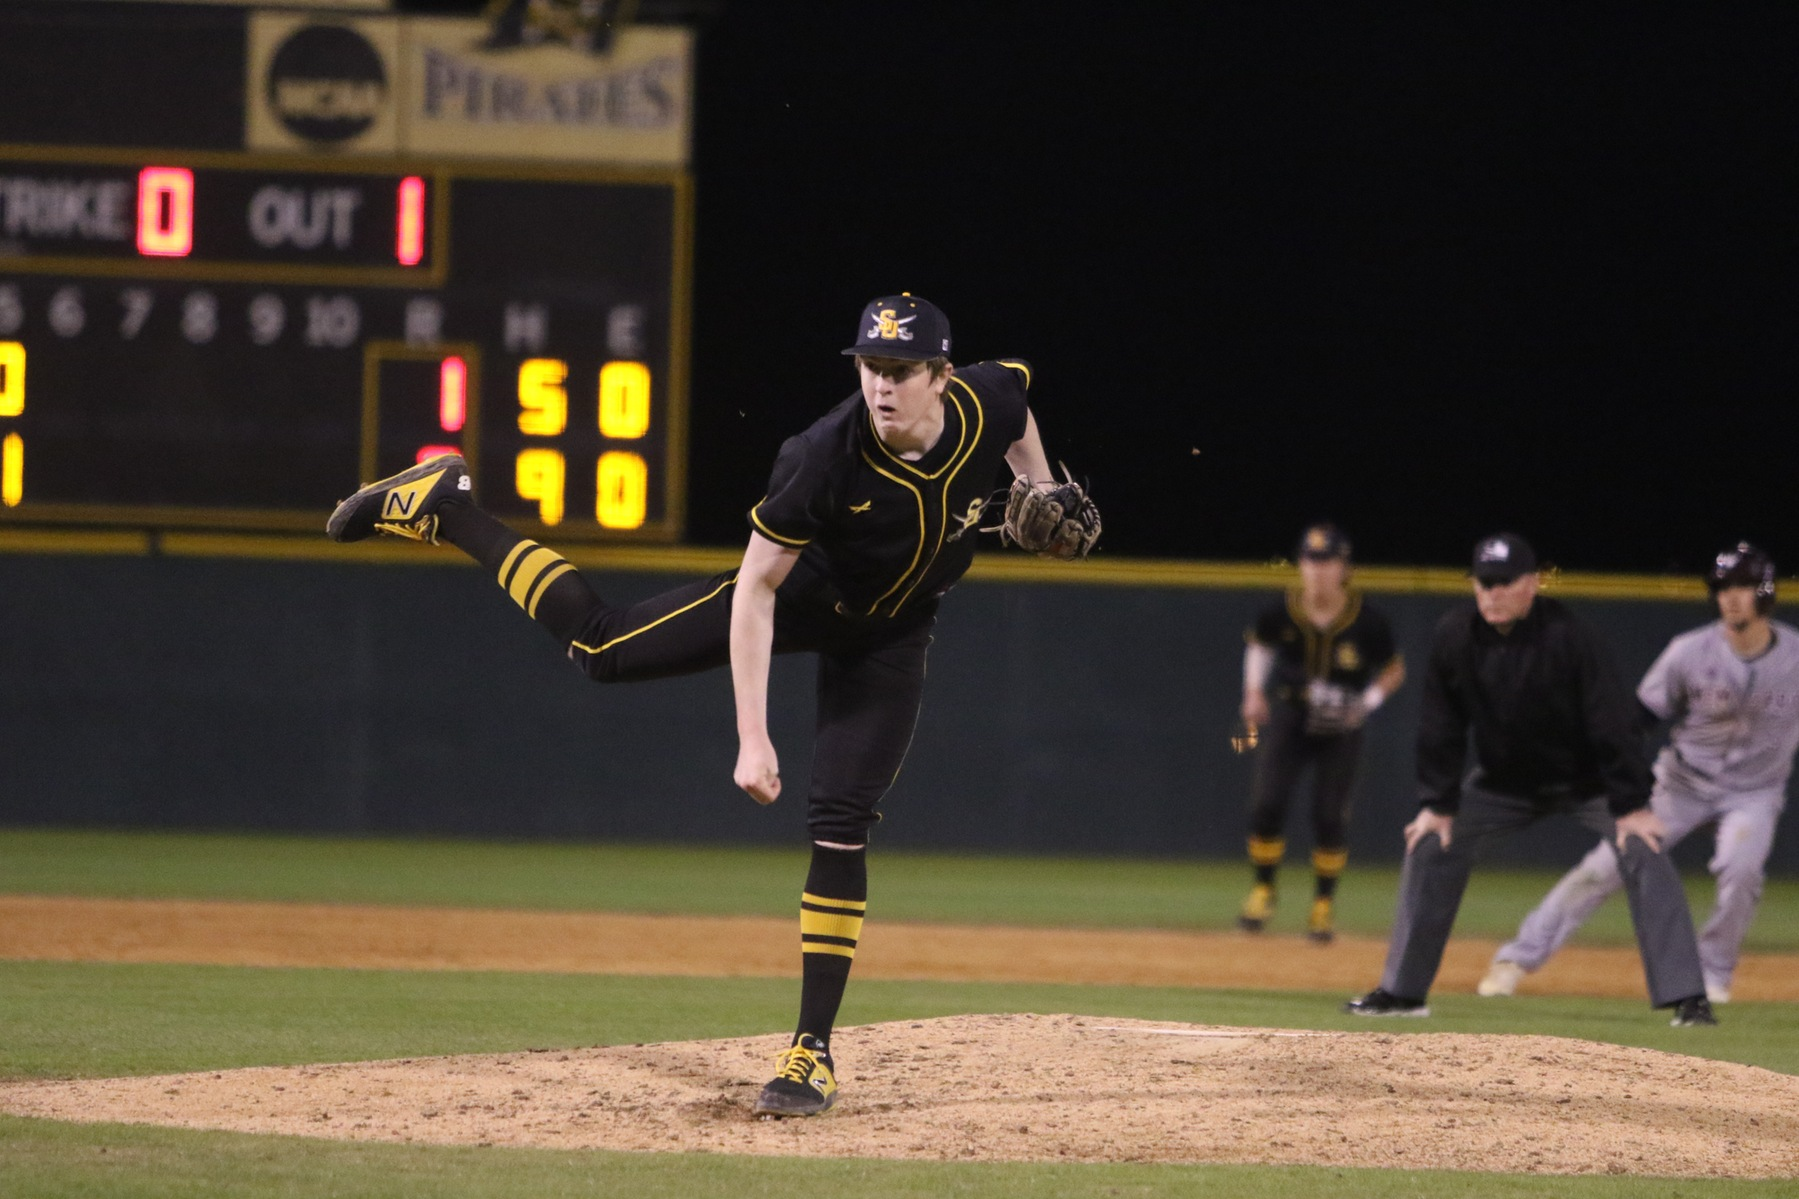 Southwestern and TLU Baseball Split Doubleheader with Strong Pitching Performances